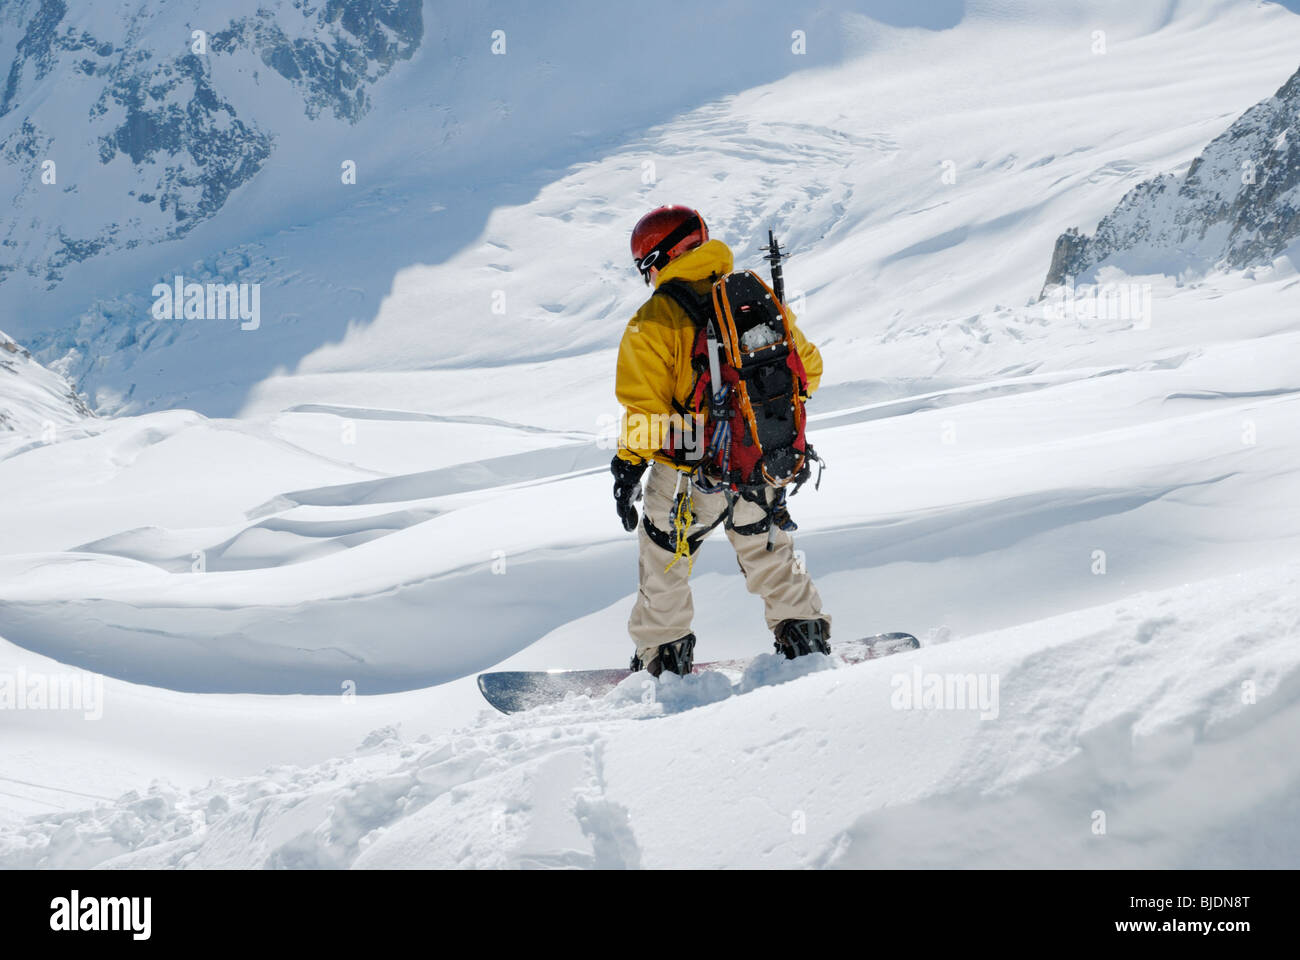 Snowboarding on 'Vallee Blanche' glacial high mountain region, Chamonix, France - Stock Image